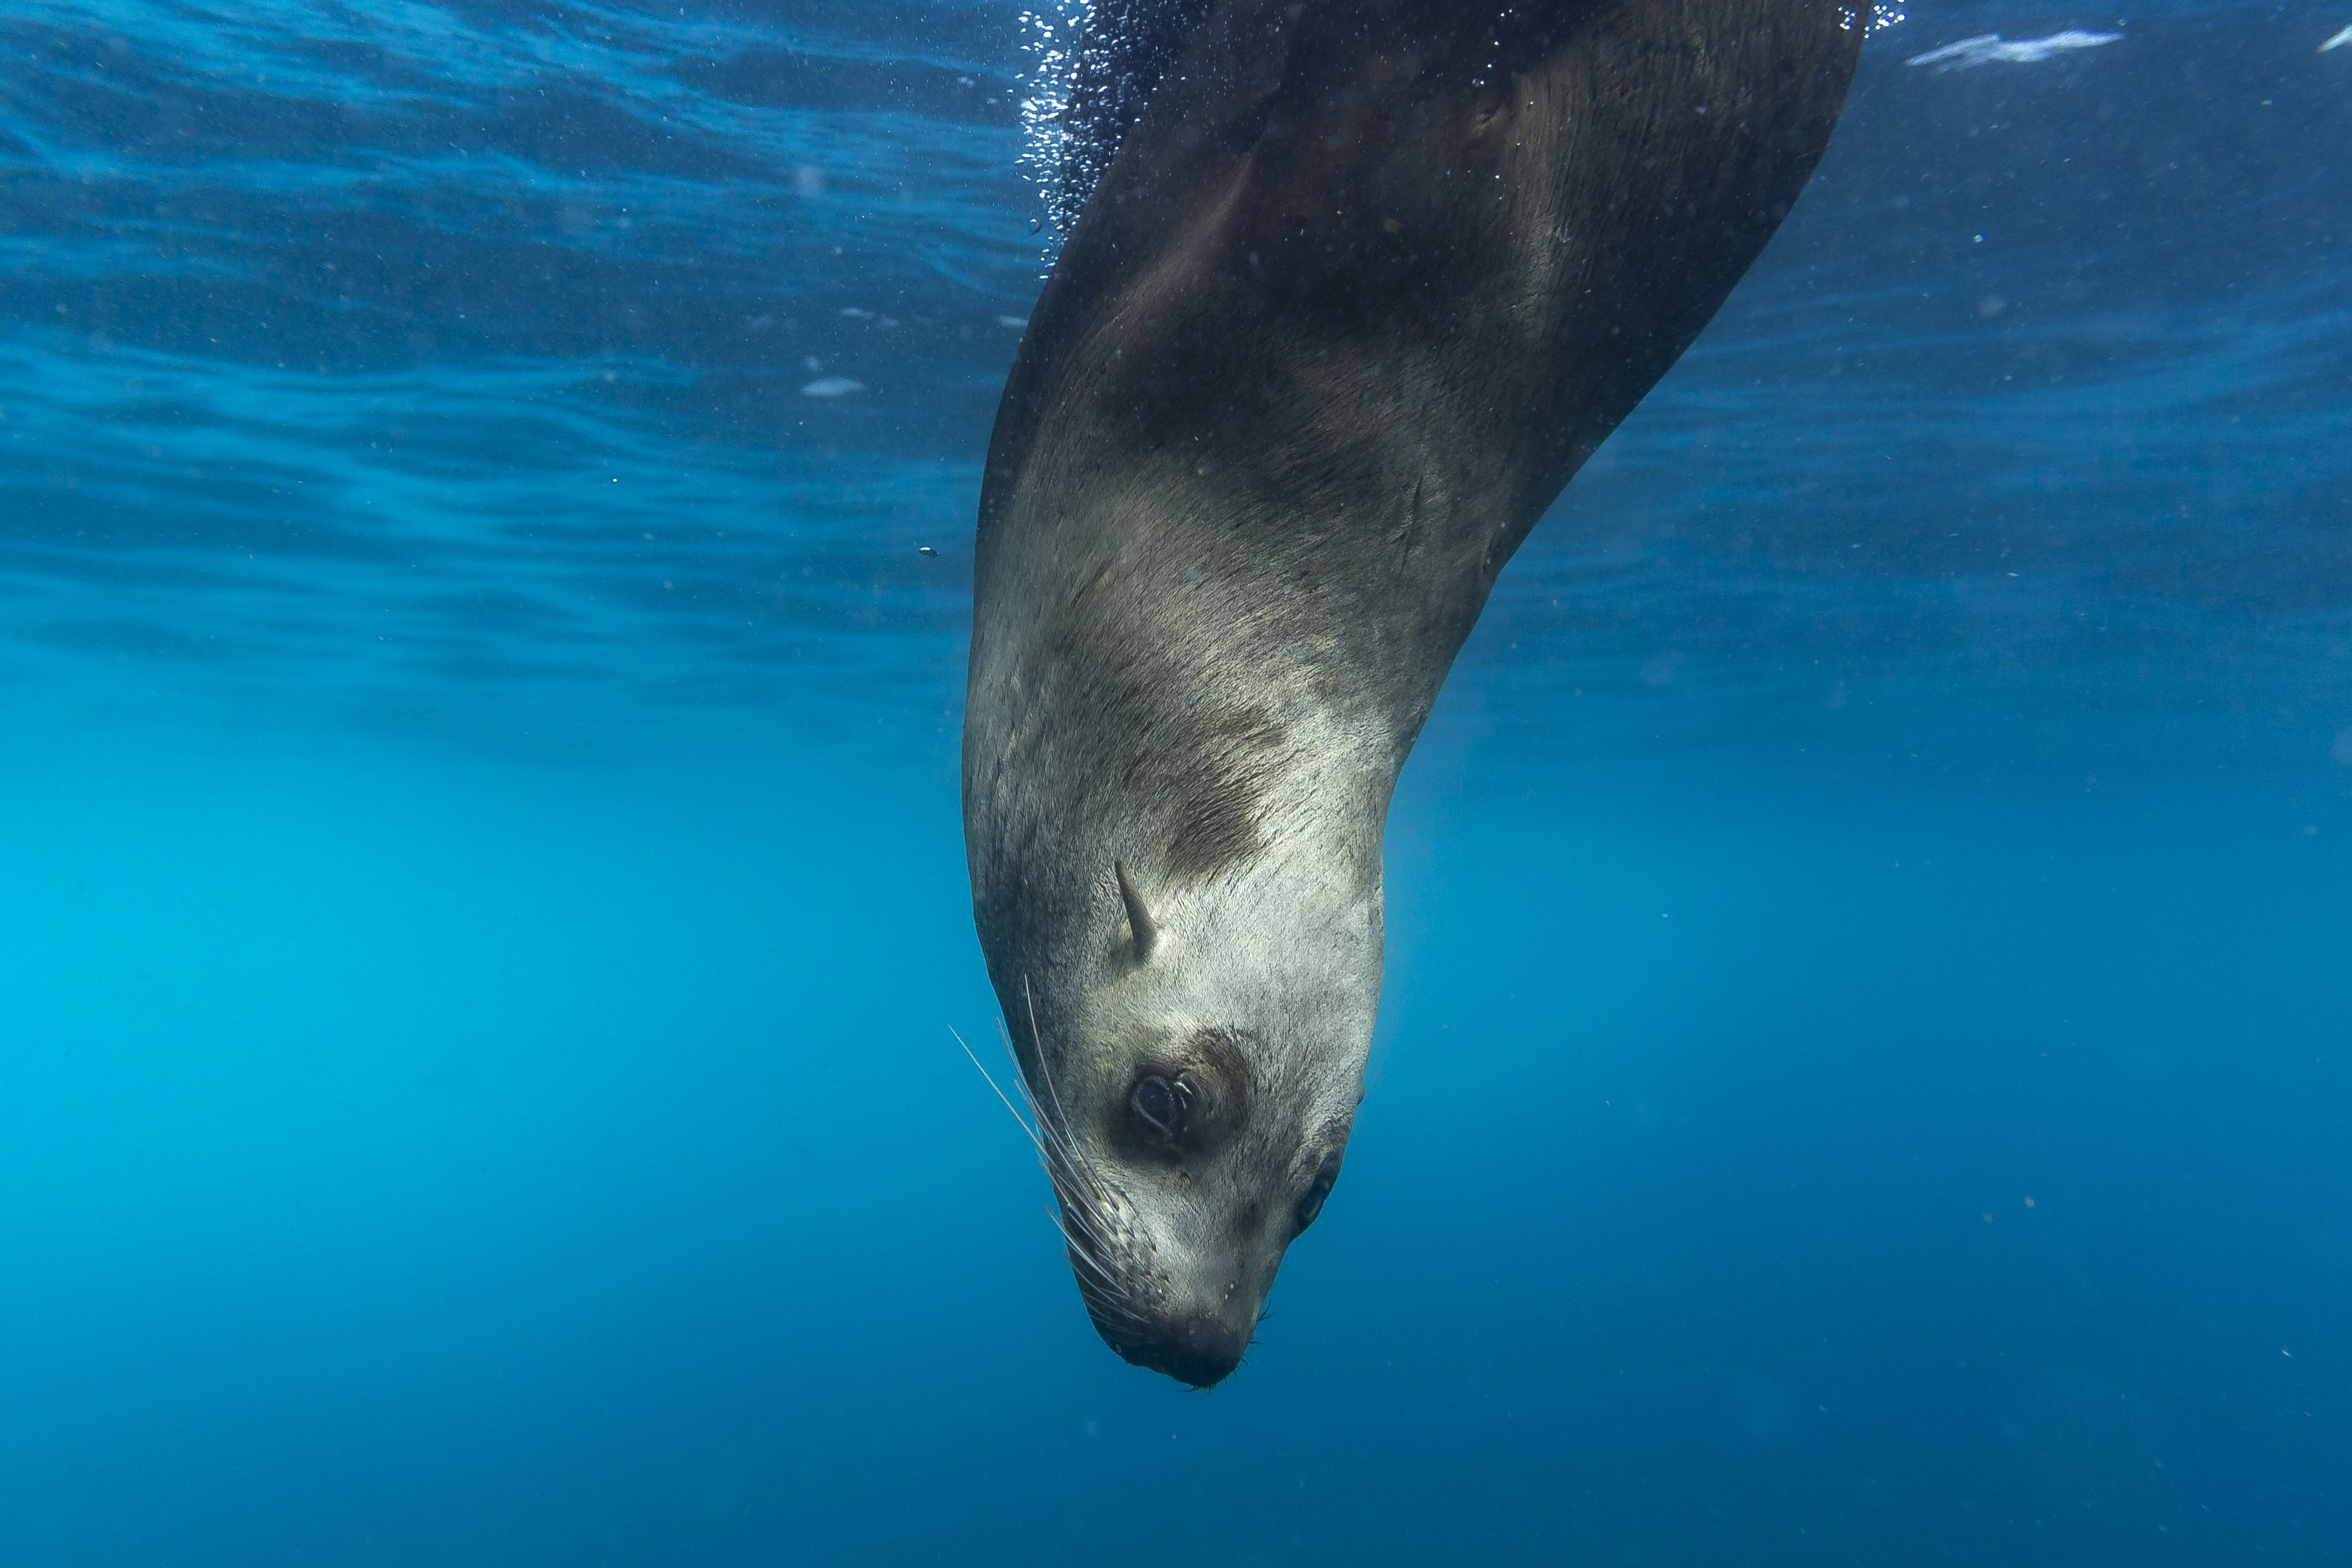 A sea lion diving down into the ocean.